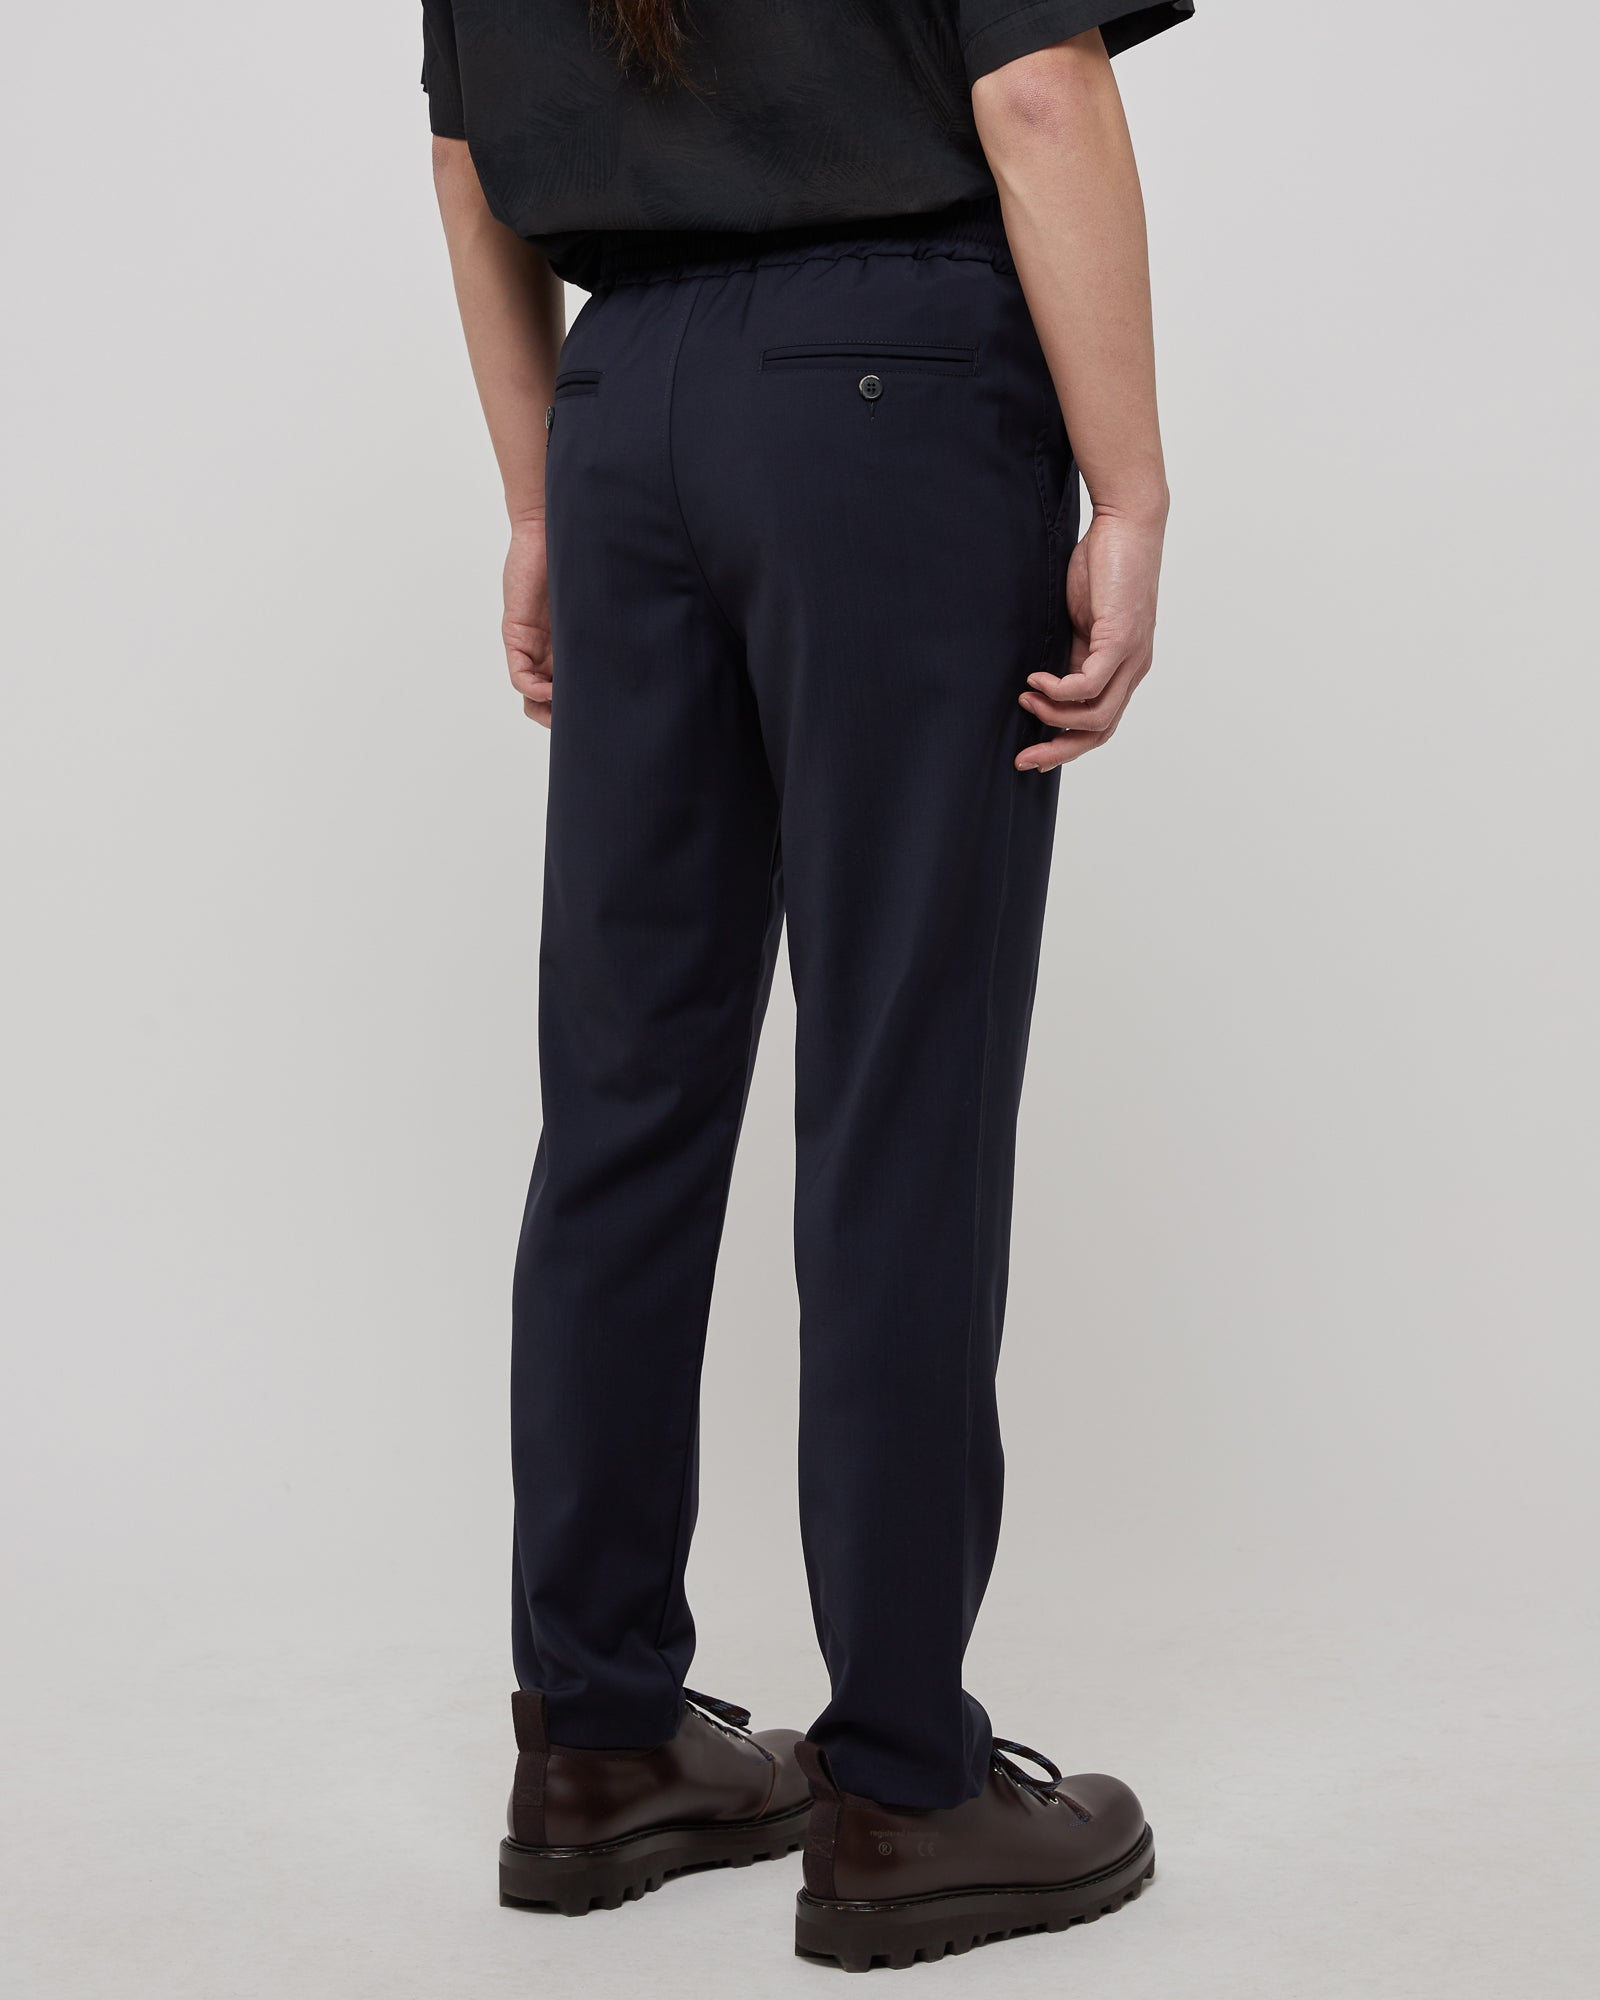 Cosma Trousers in Navy